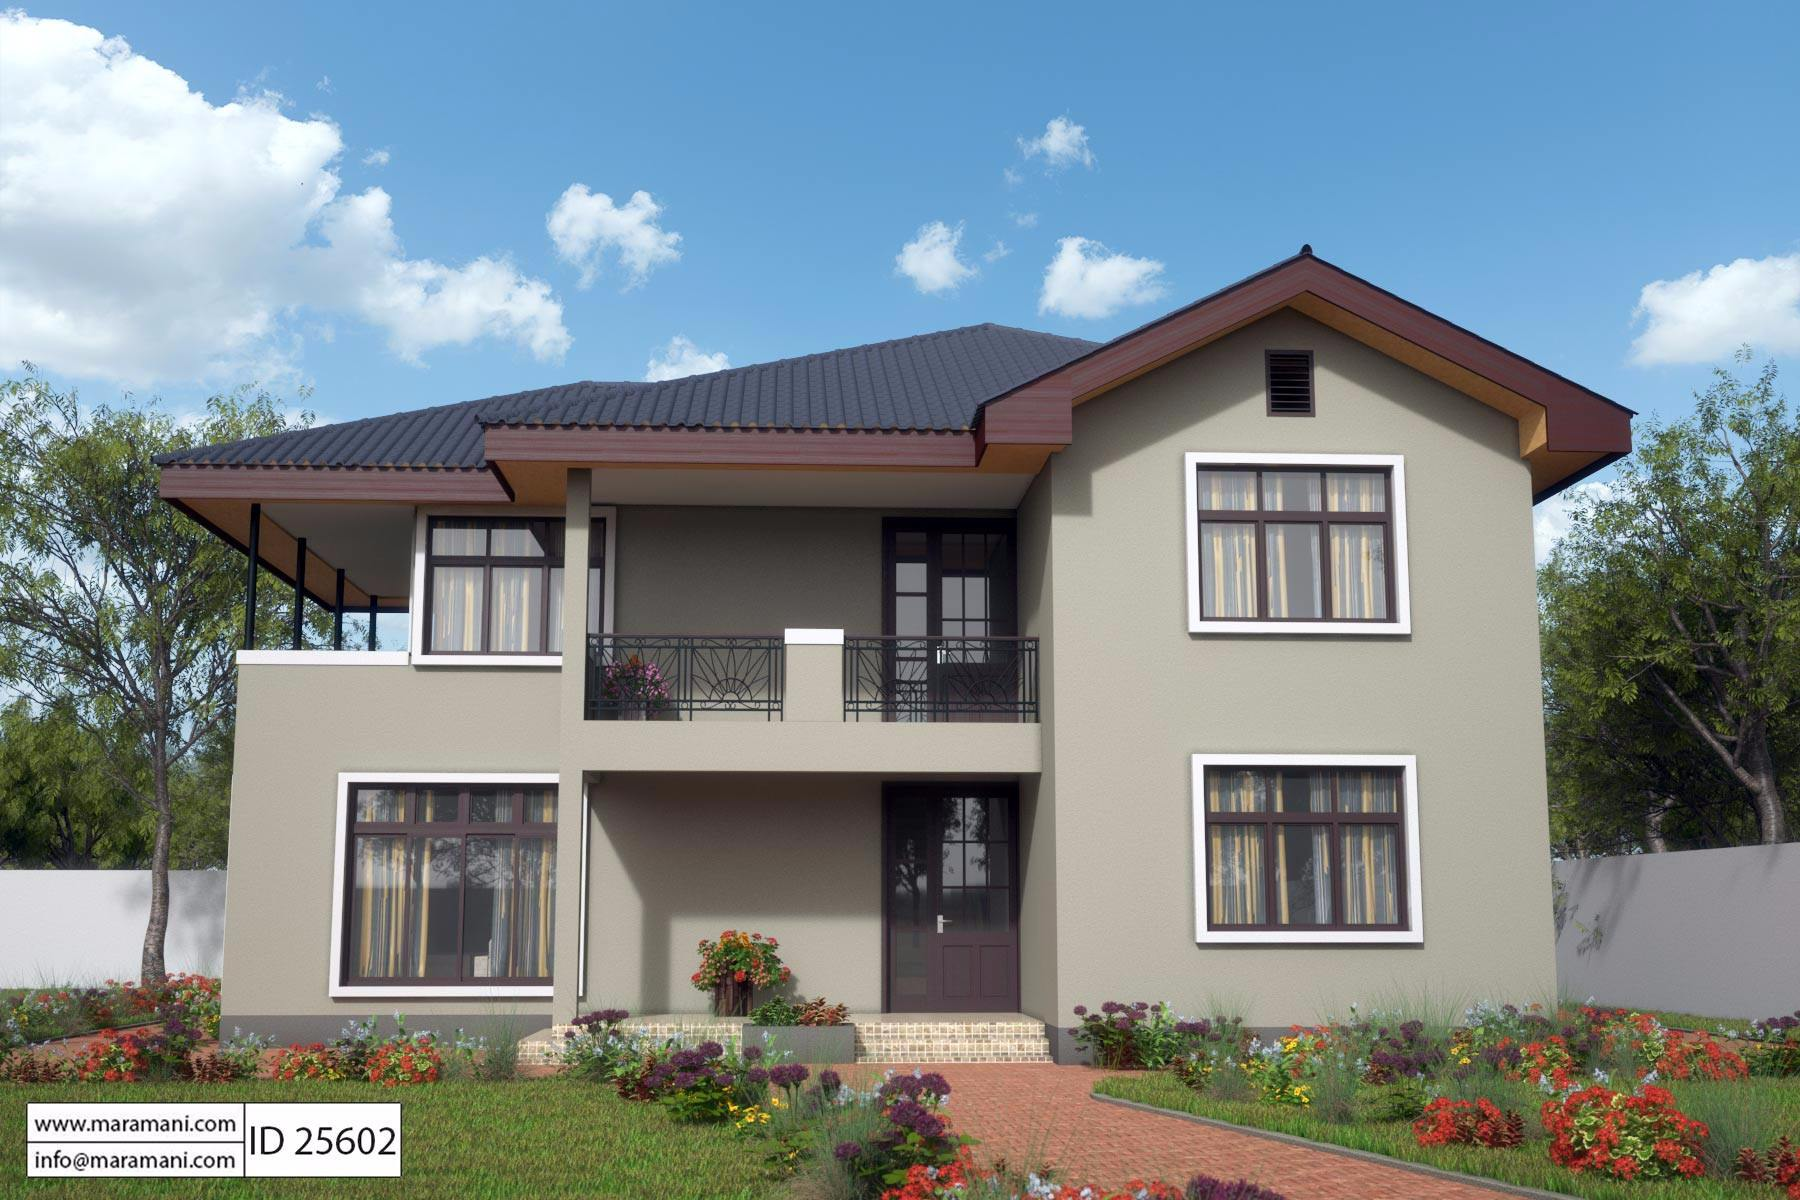 Compact 5 bedroom house design All rooms are self contained